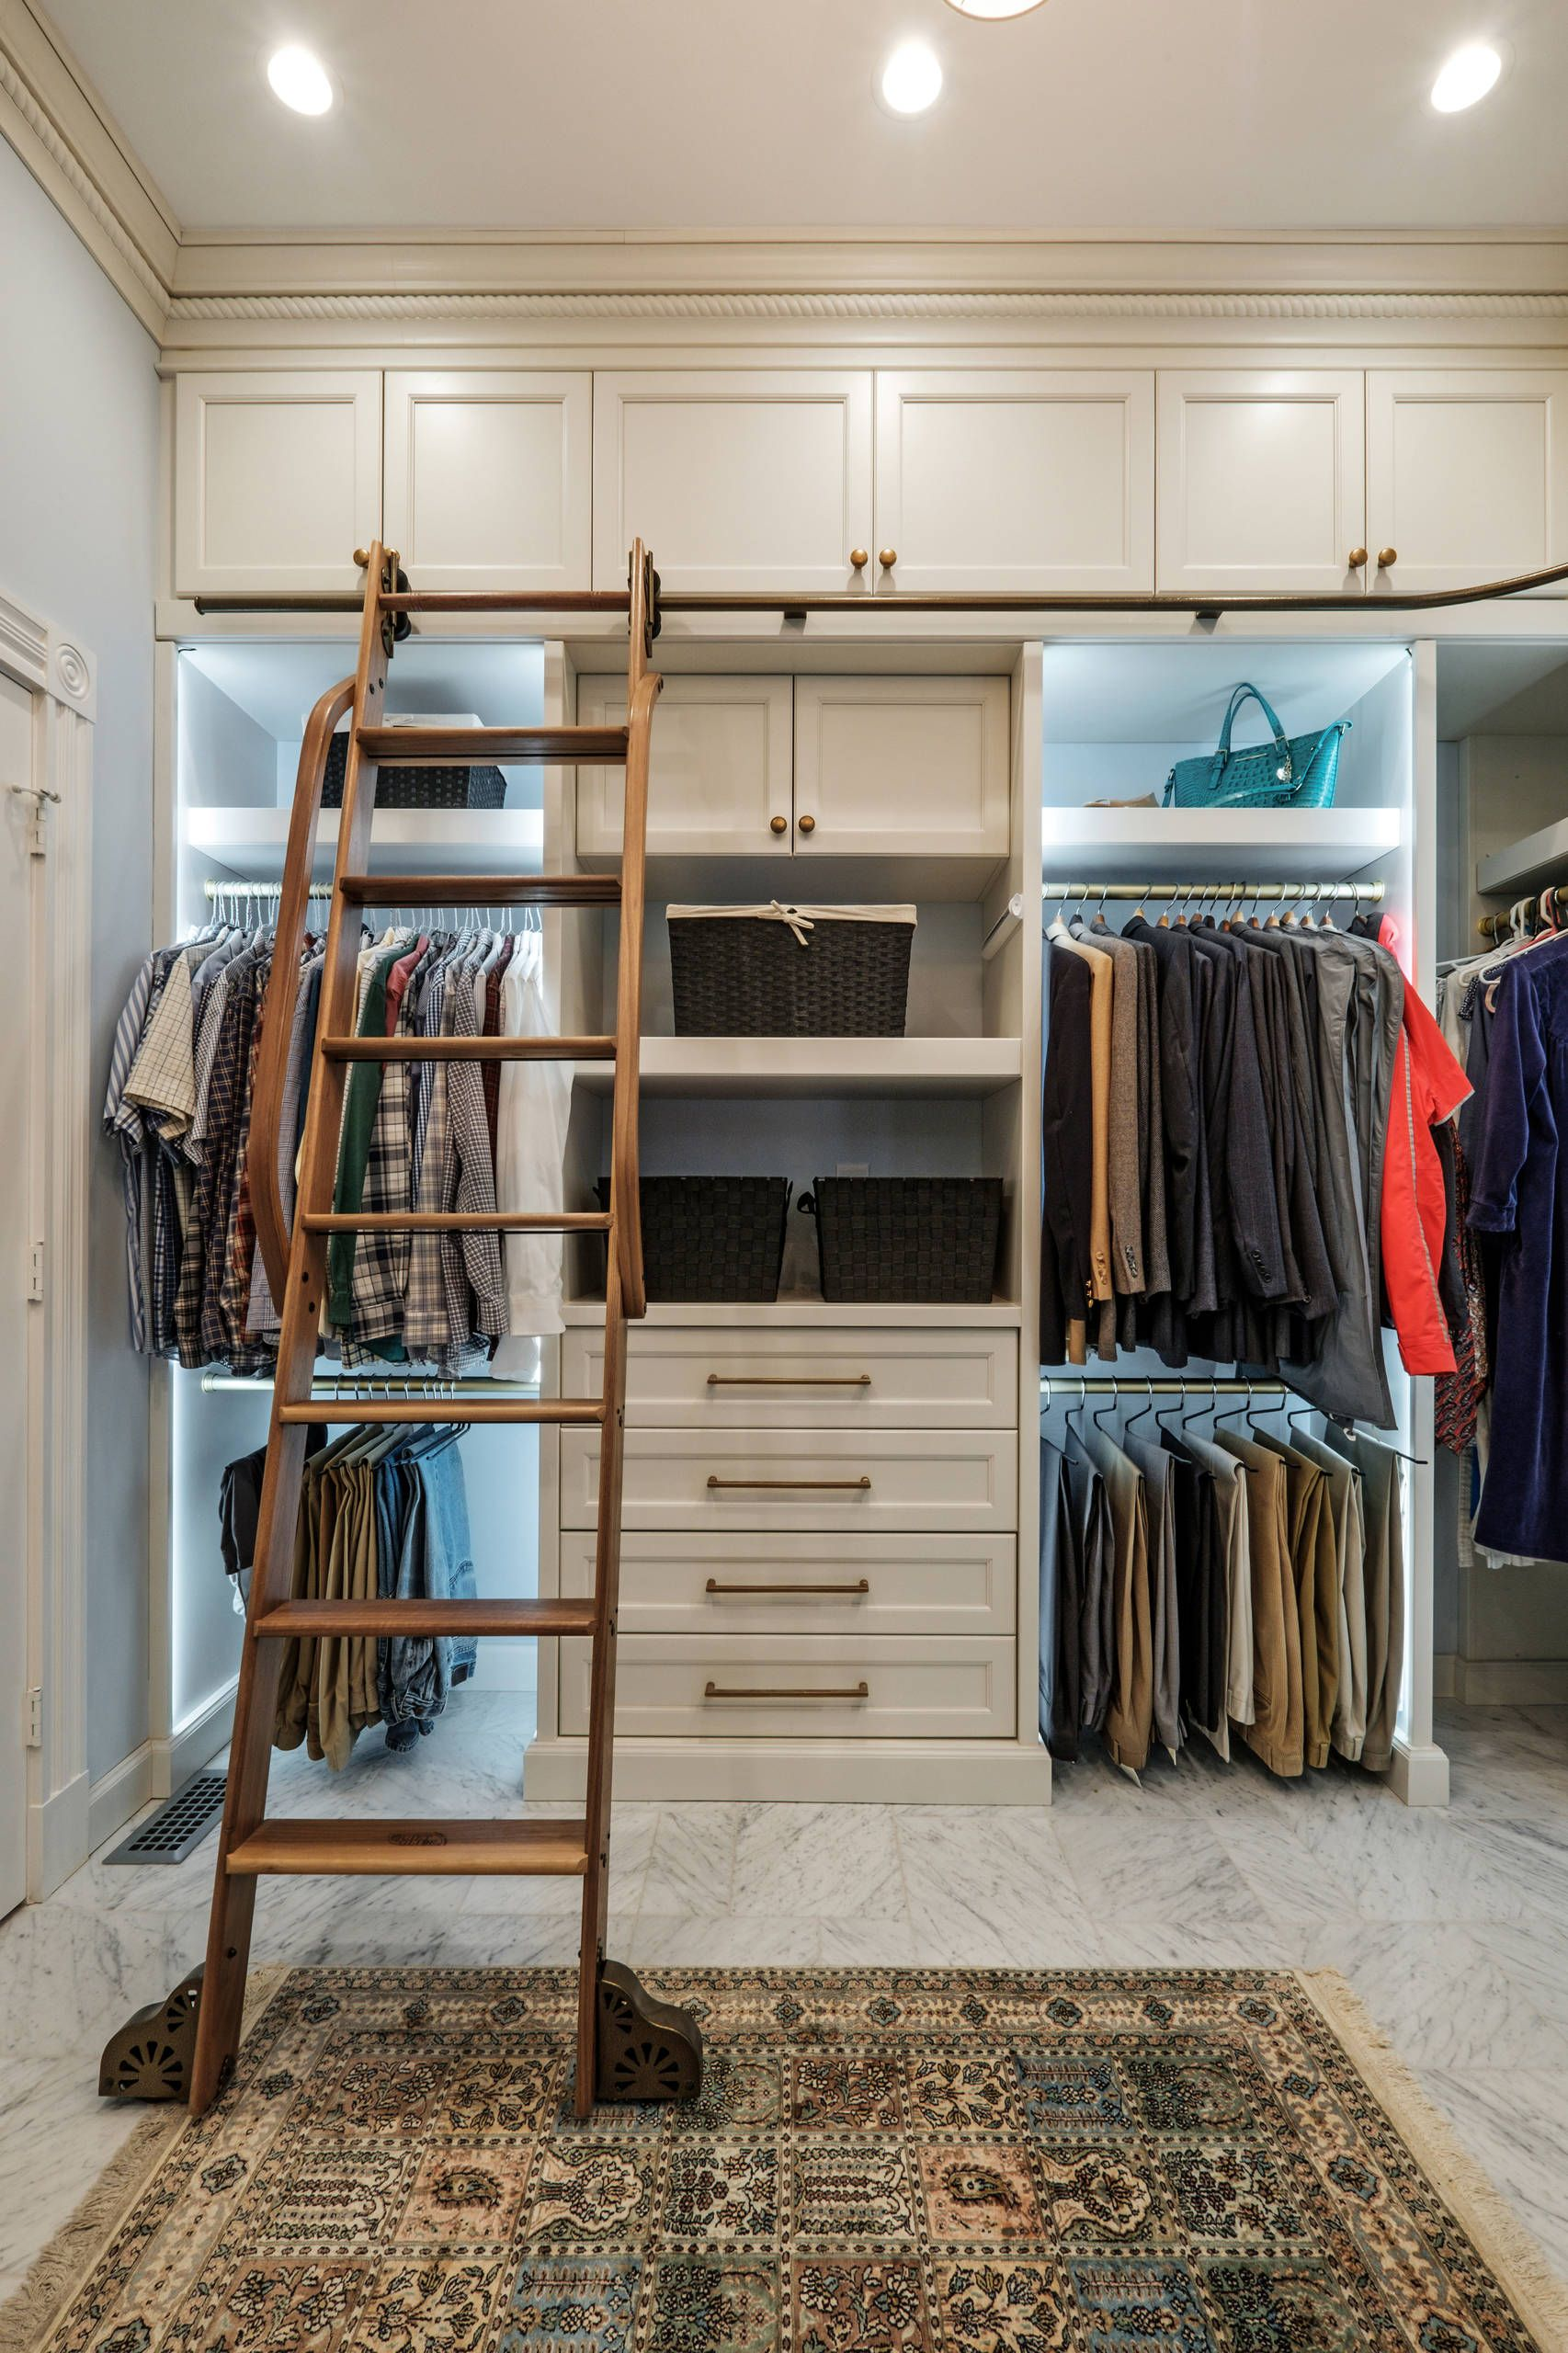 31 great walk in closet ideas walk in closet design on extraordinary small walk in closet ideas makeovers id=18565